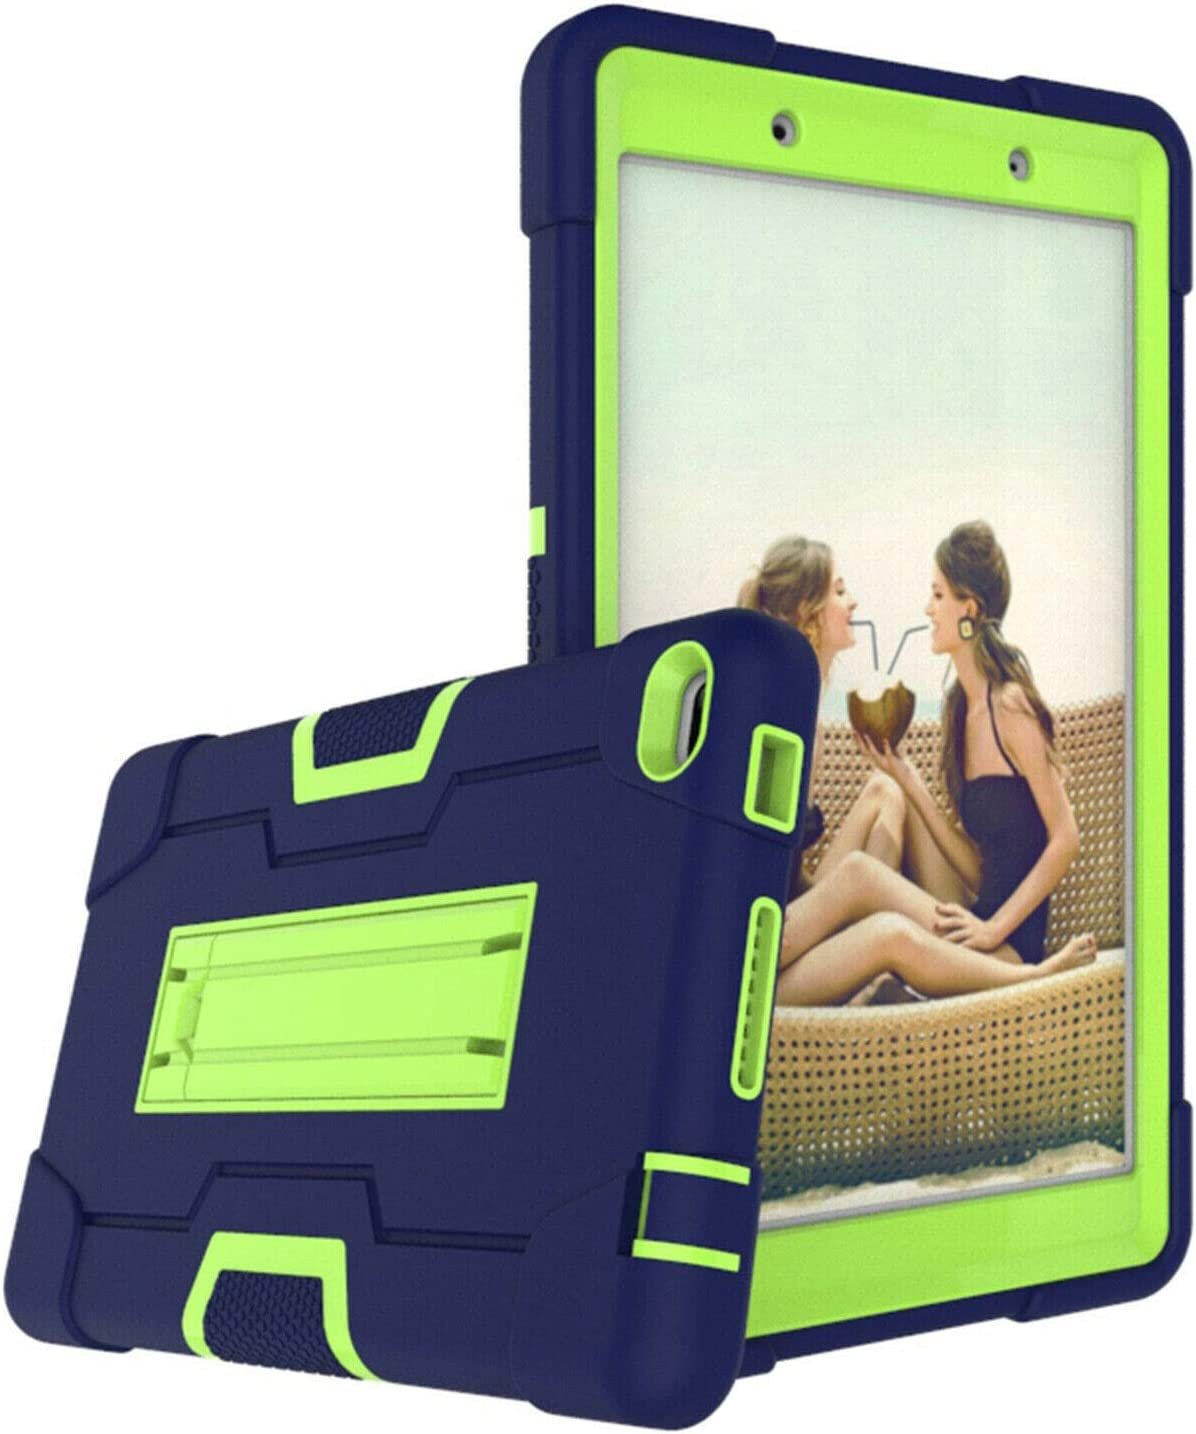 Cherrry for Lenovo Tab E8/TB8304F 8.0 Inch Tablet Case,Heavy Duty Shockproof Hybrid Rugged Hard Armor Full Body Protective Case with Built-in Stand for Lenovo Tab E8/TB8304F 8.0 Inch(Navy/Green)